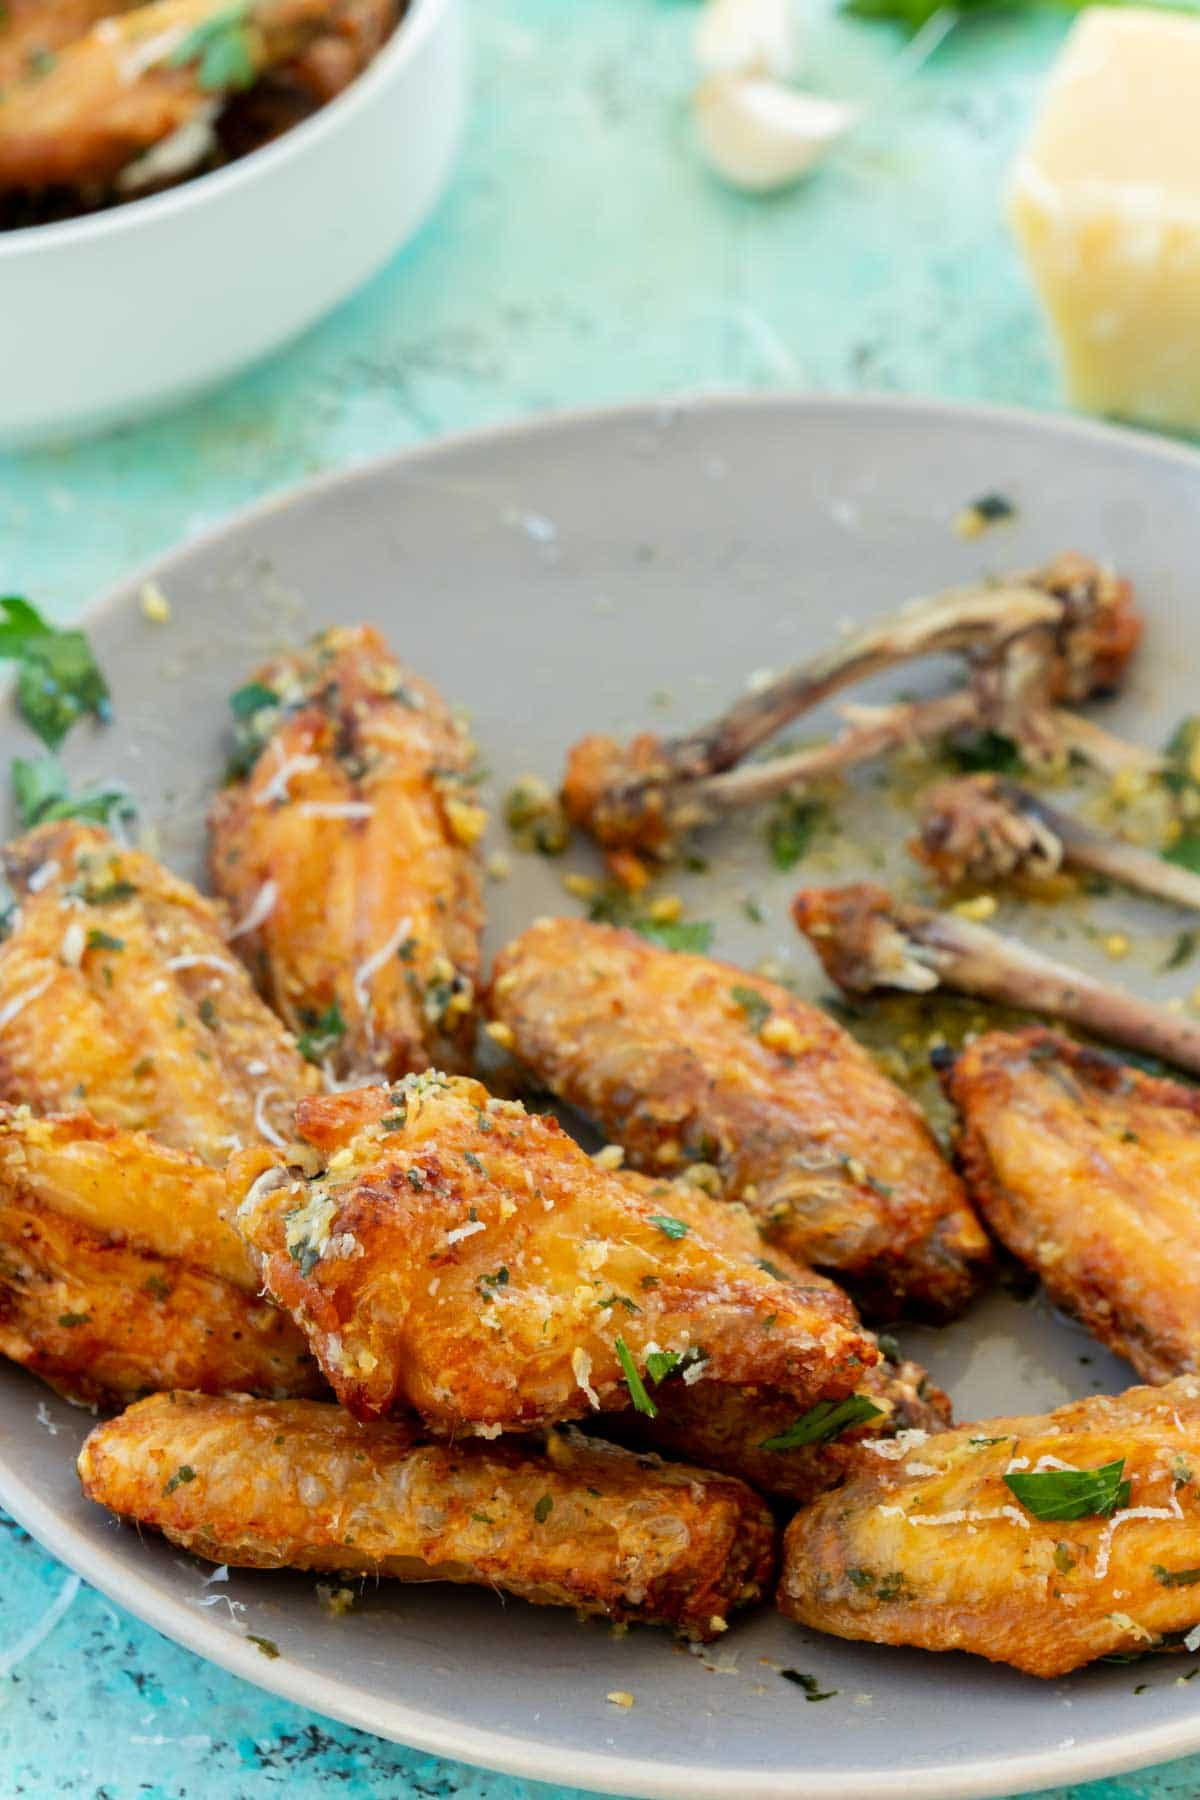 A plate of wings with a couple of wing bones